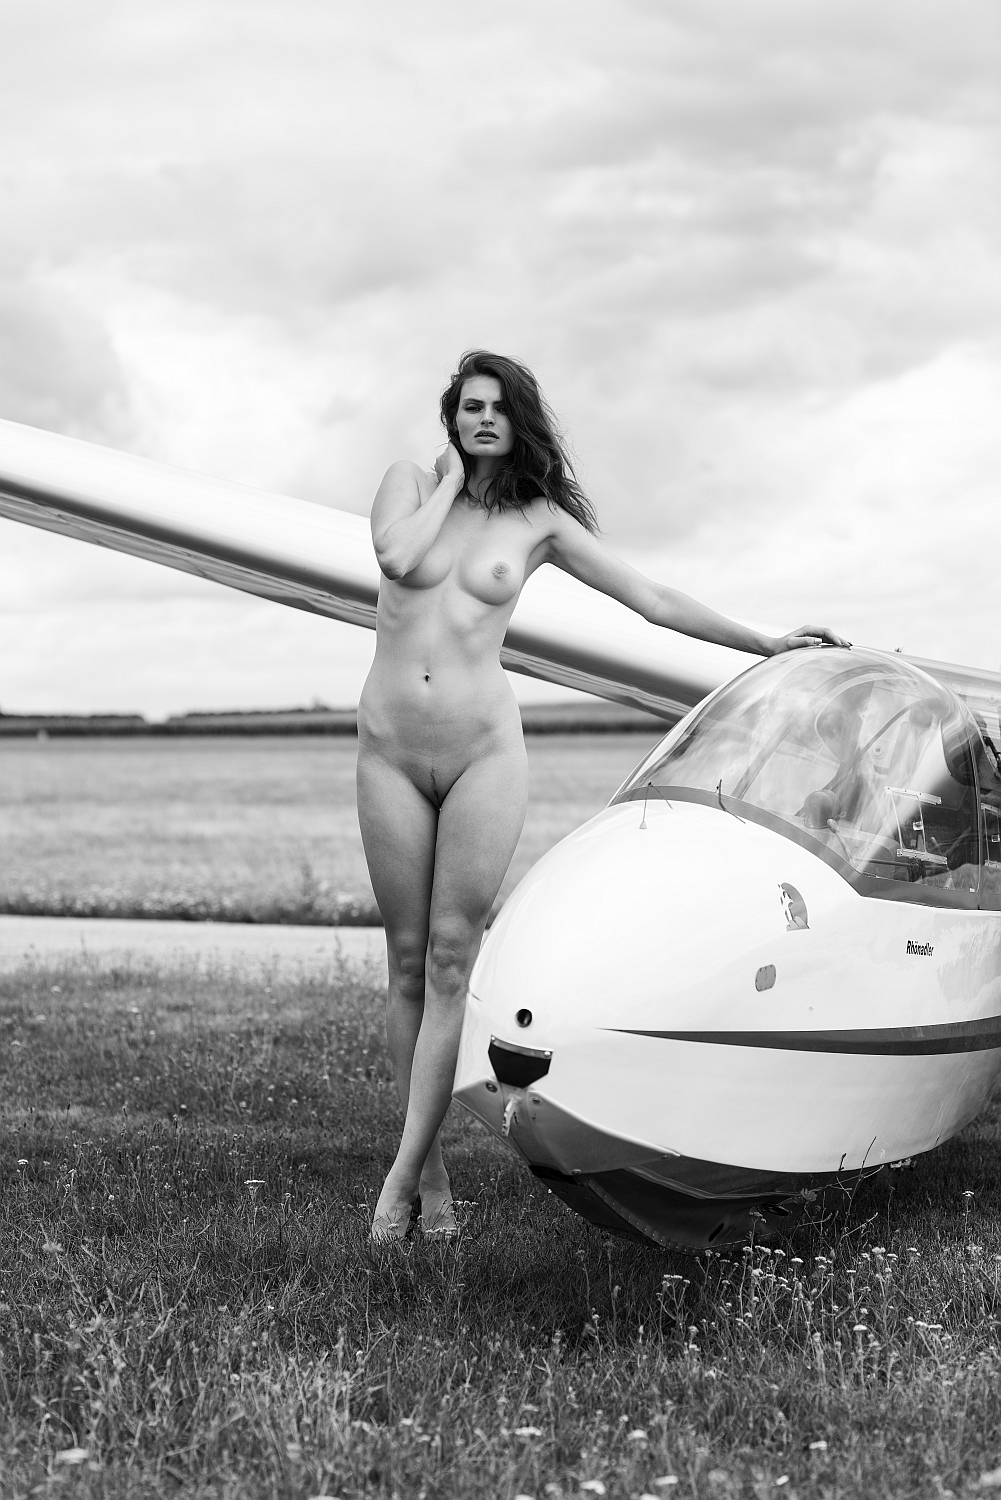 With glider III